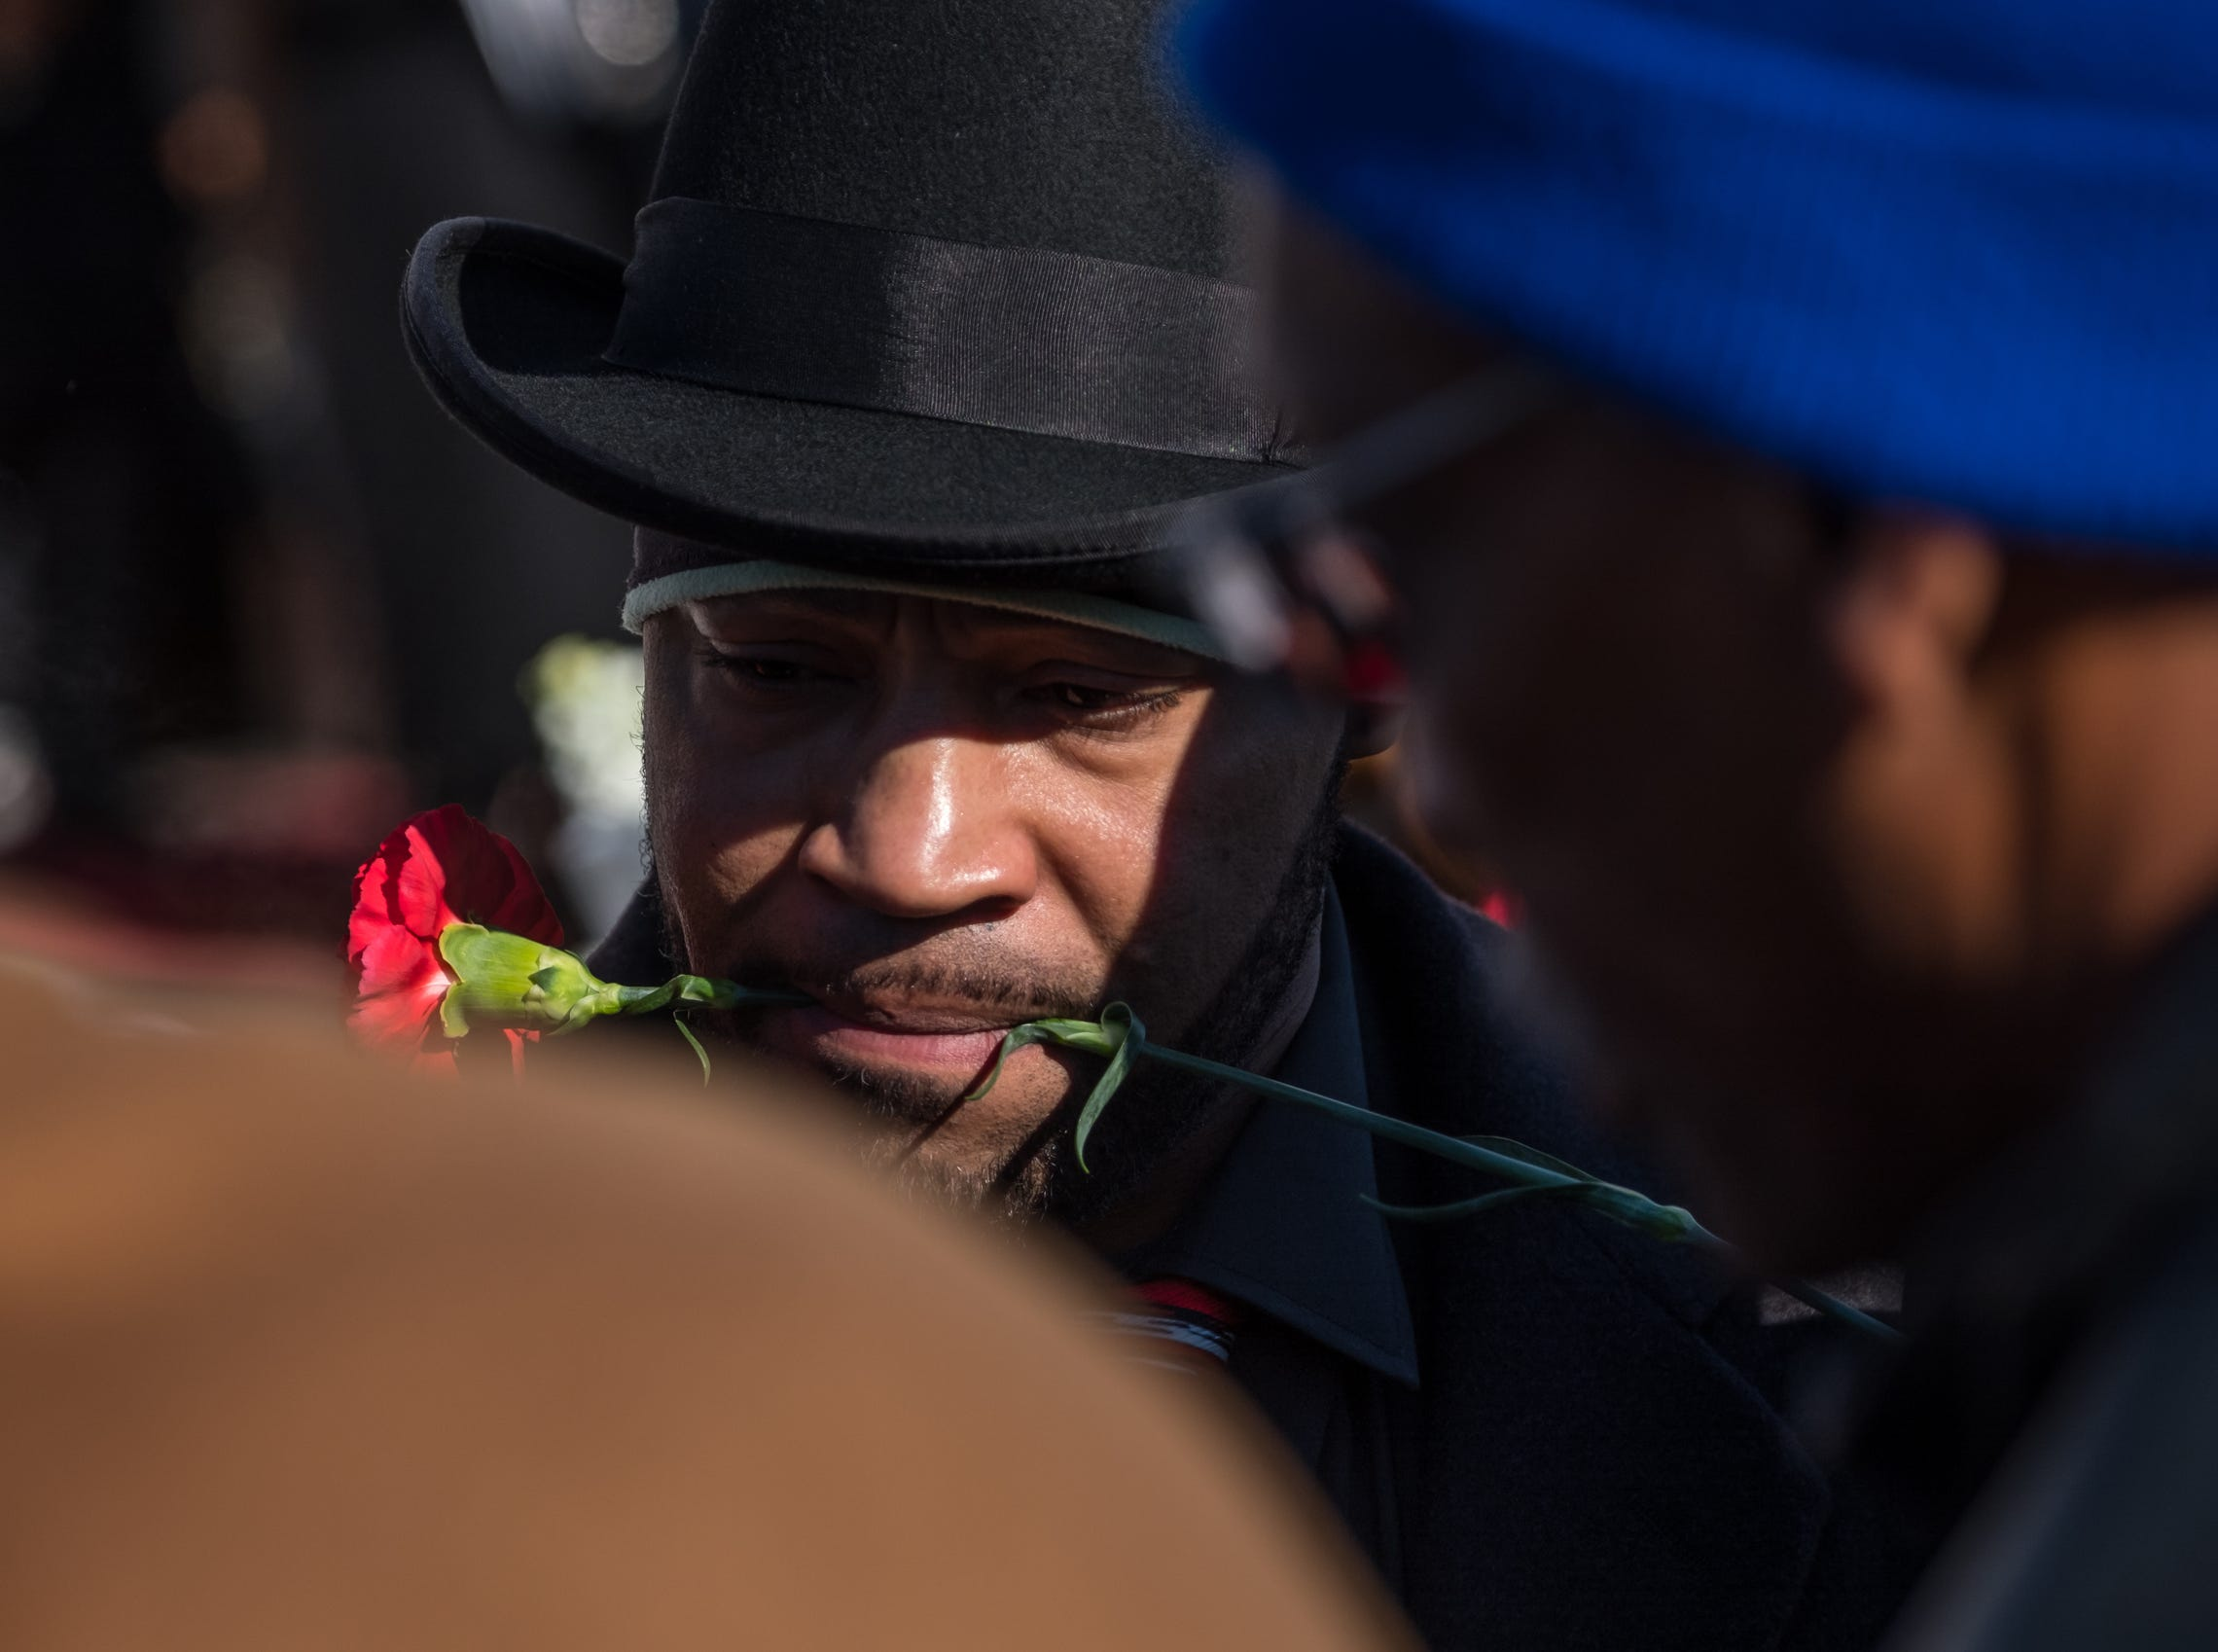 Mark Barker carries a rose from the casket of his brother Rudy Barker while loading it into the hearse during his brother's funeral at Hutchison Funeral Home in Detroit on Monday, January 21, 2019. Barker was known for his impressions of late civil rights leader Martin Luther King Jr. and was buried on the national holiday honoring his hero.